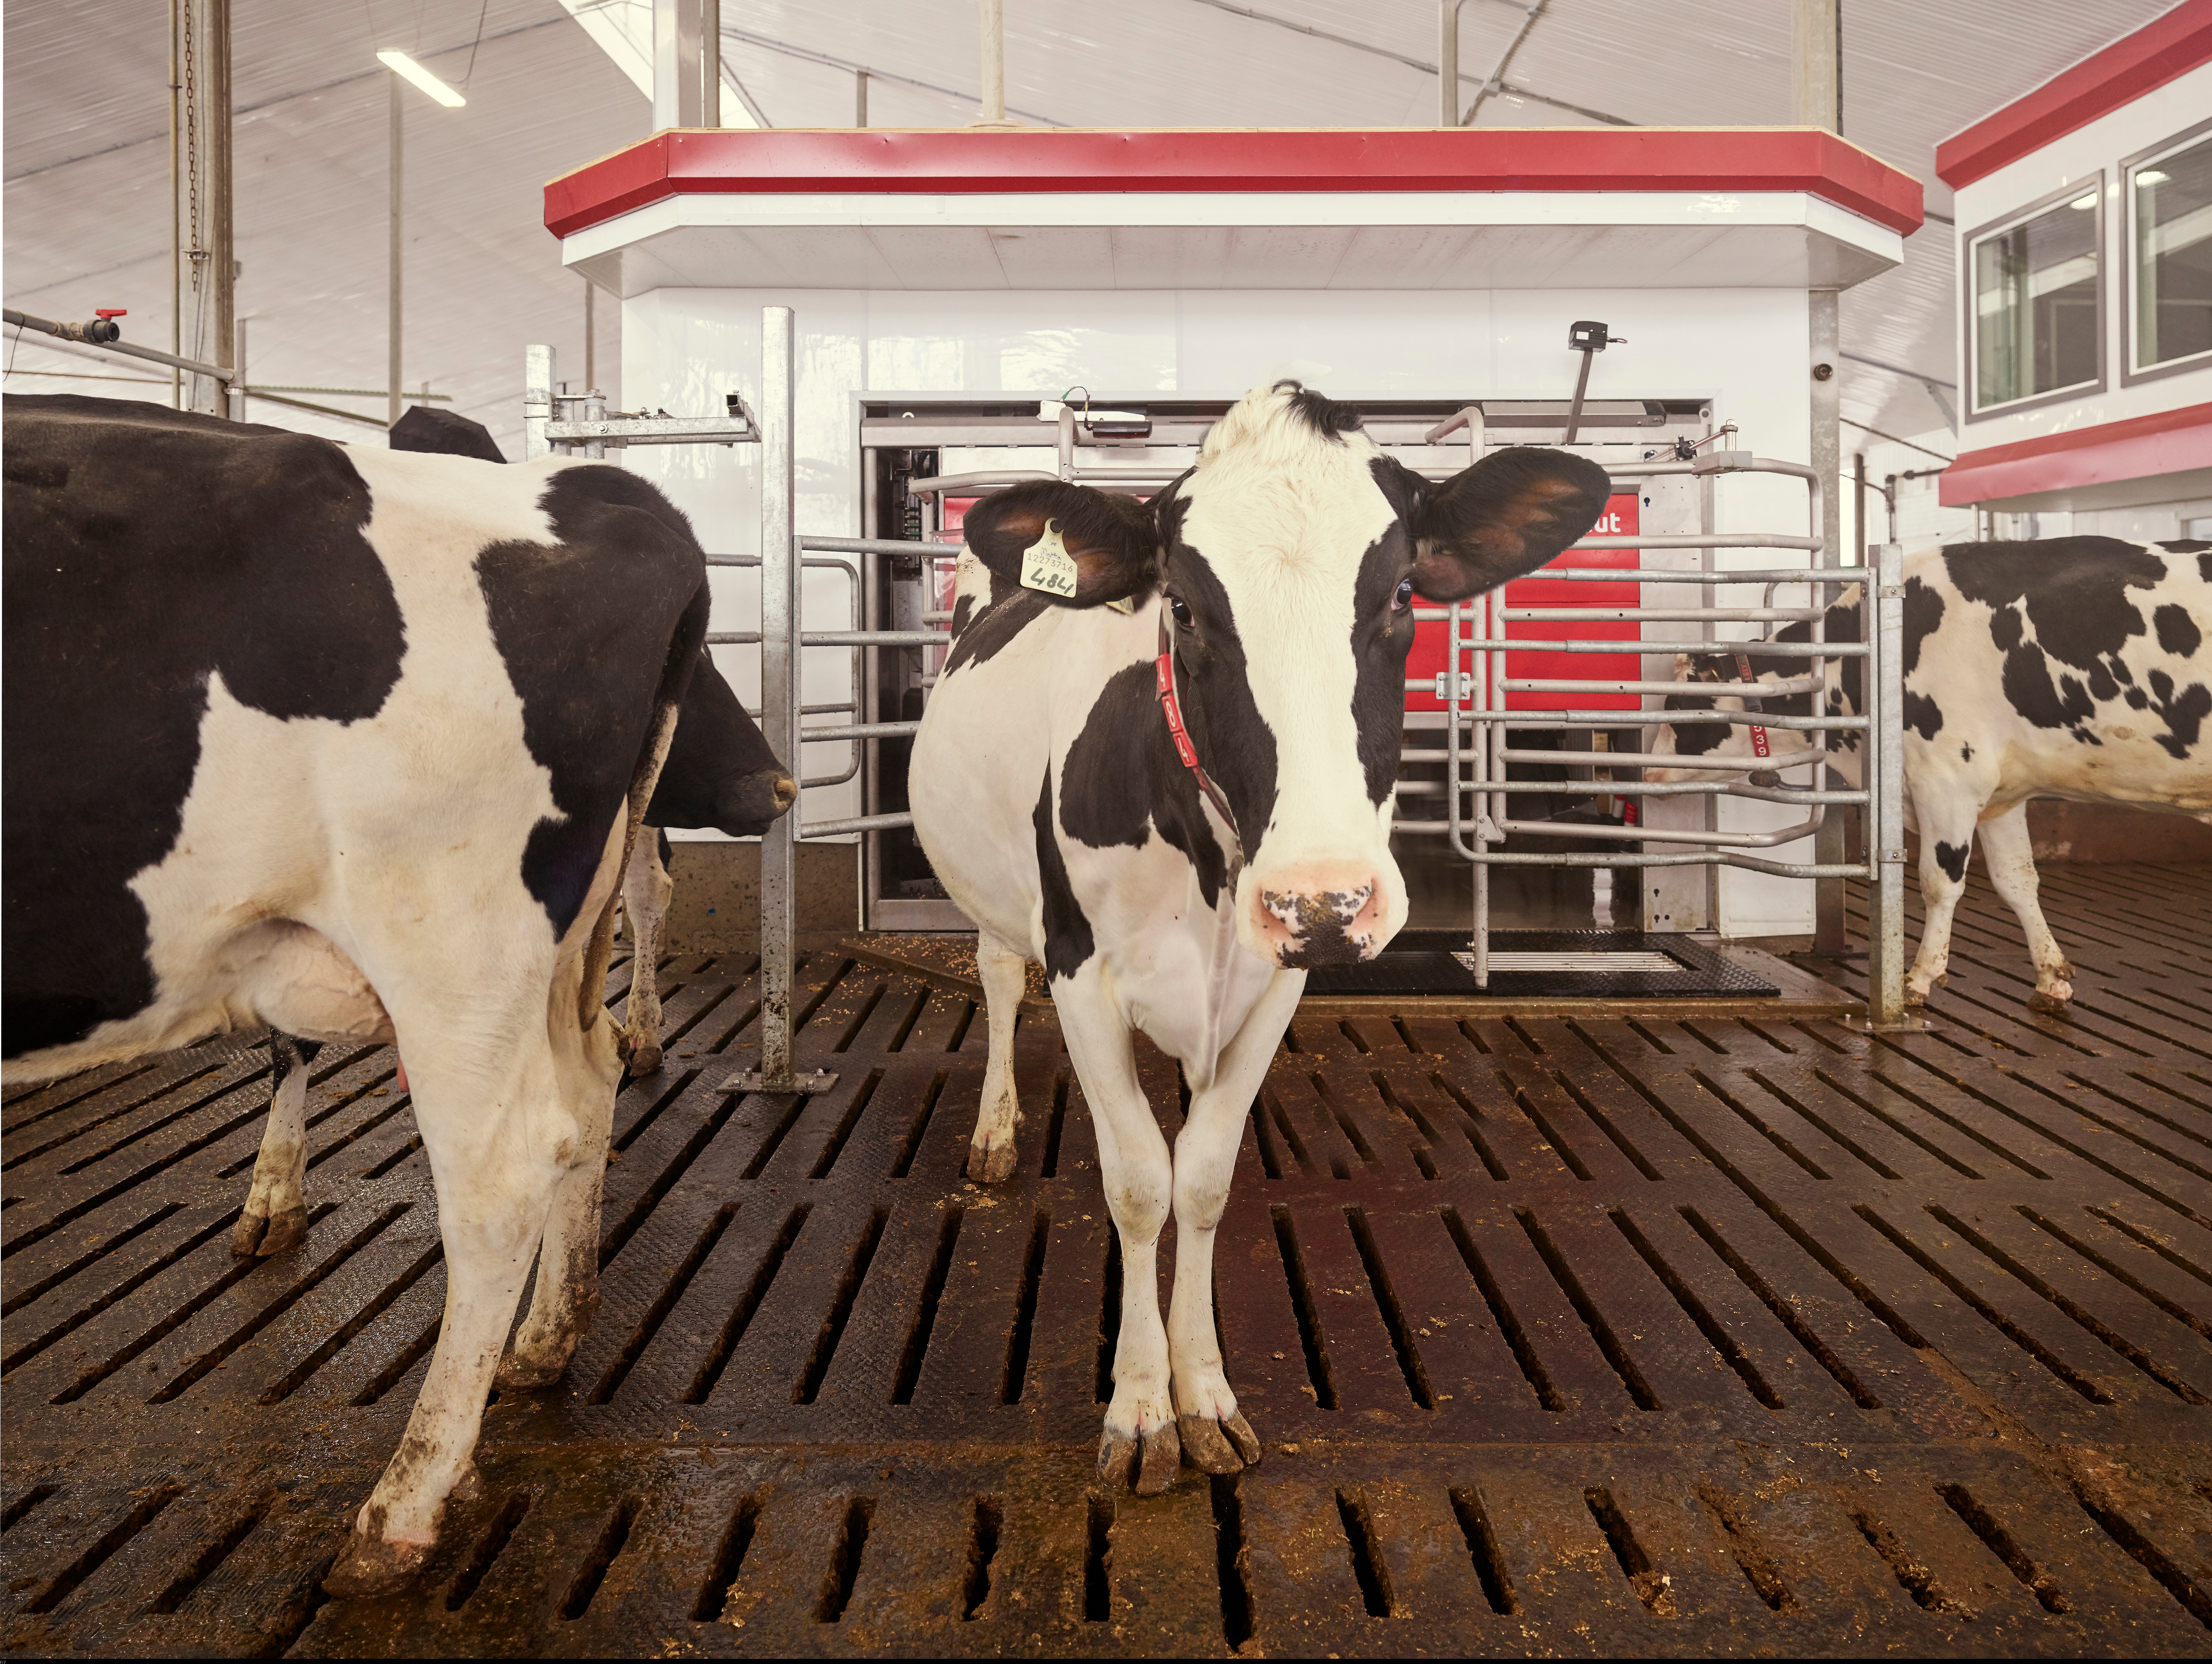 Society demand more and more from dairy farmers when it comes to animal welfare and sustainability commented ceo alexander van der lely when marking